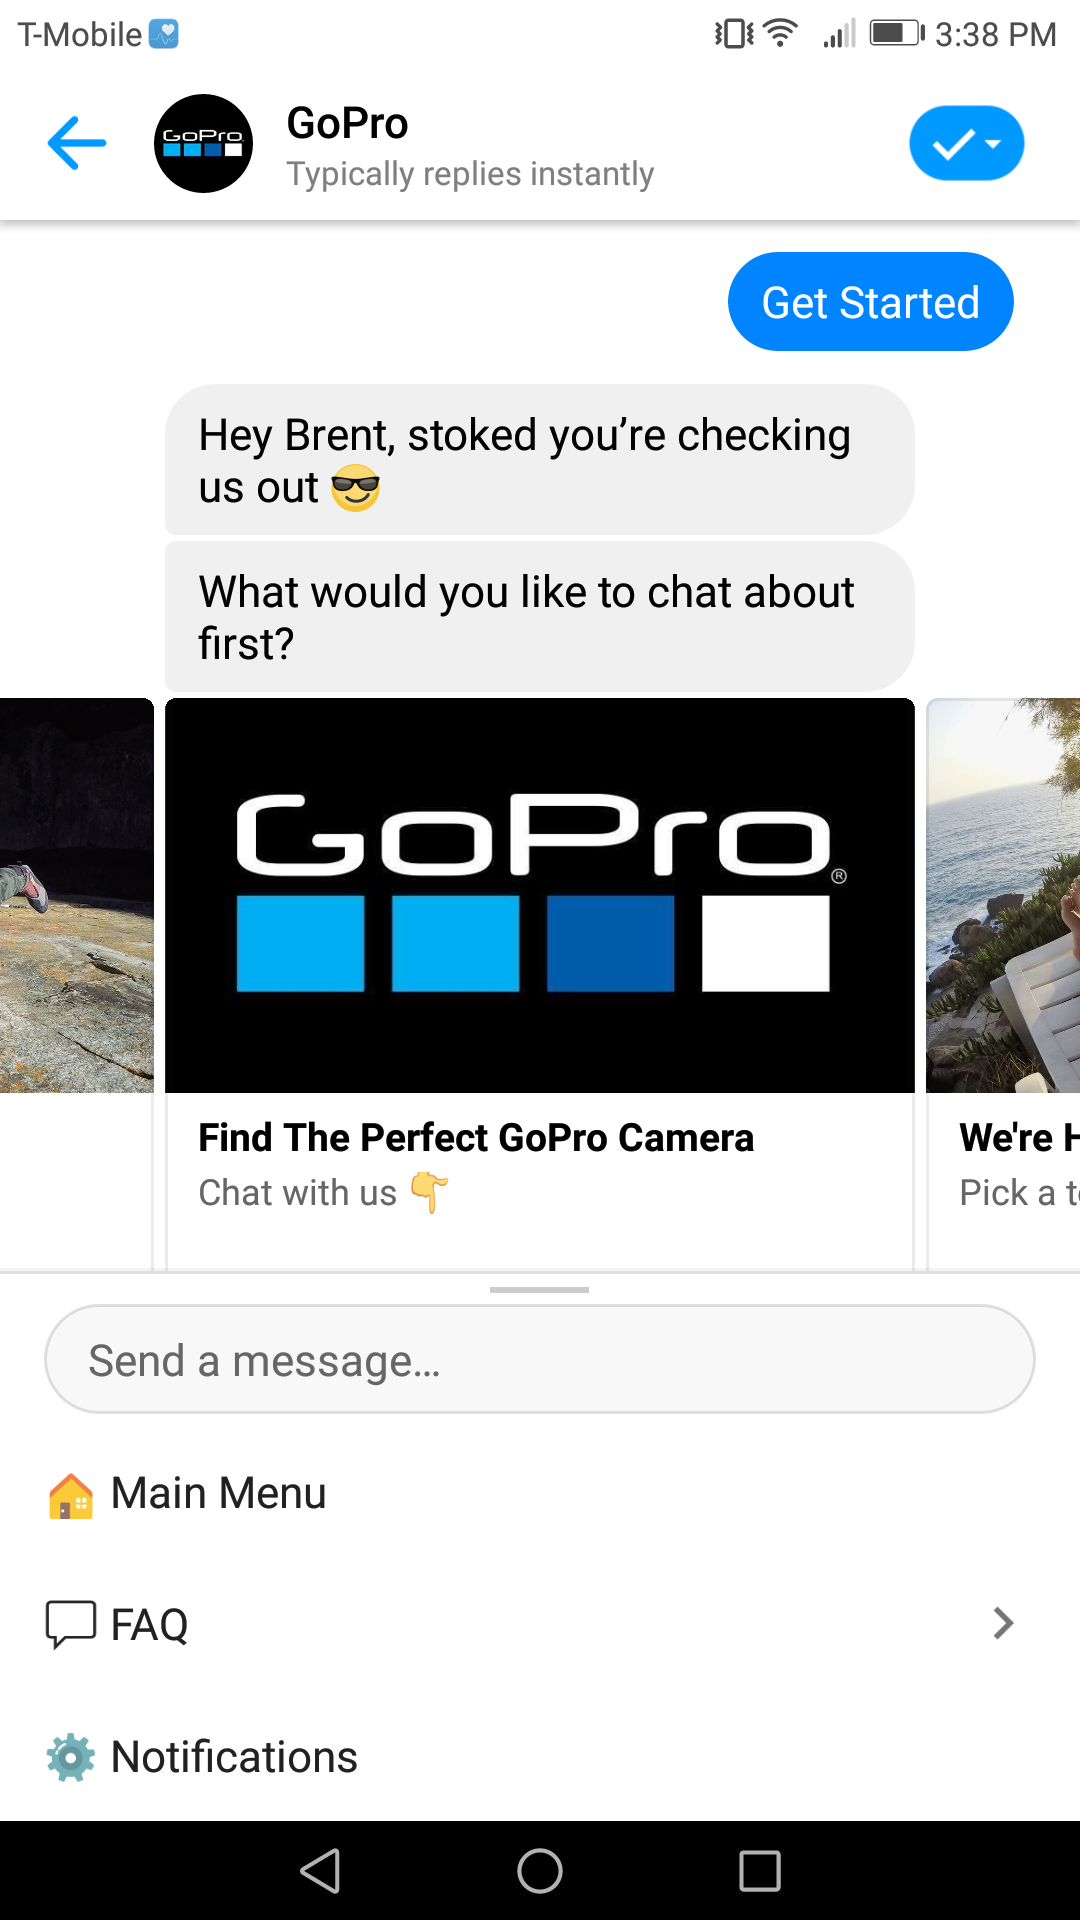 GoPro is a chatbot marketing example with personality